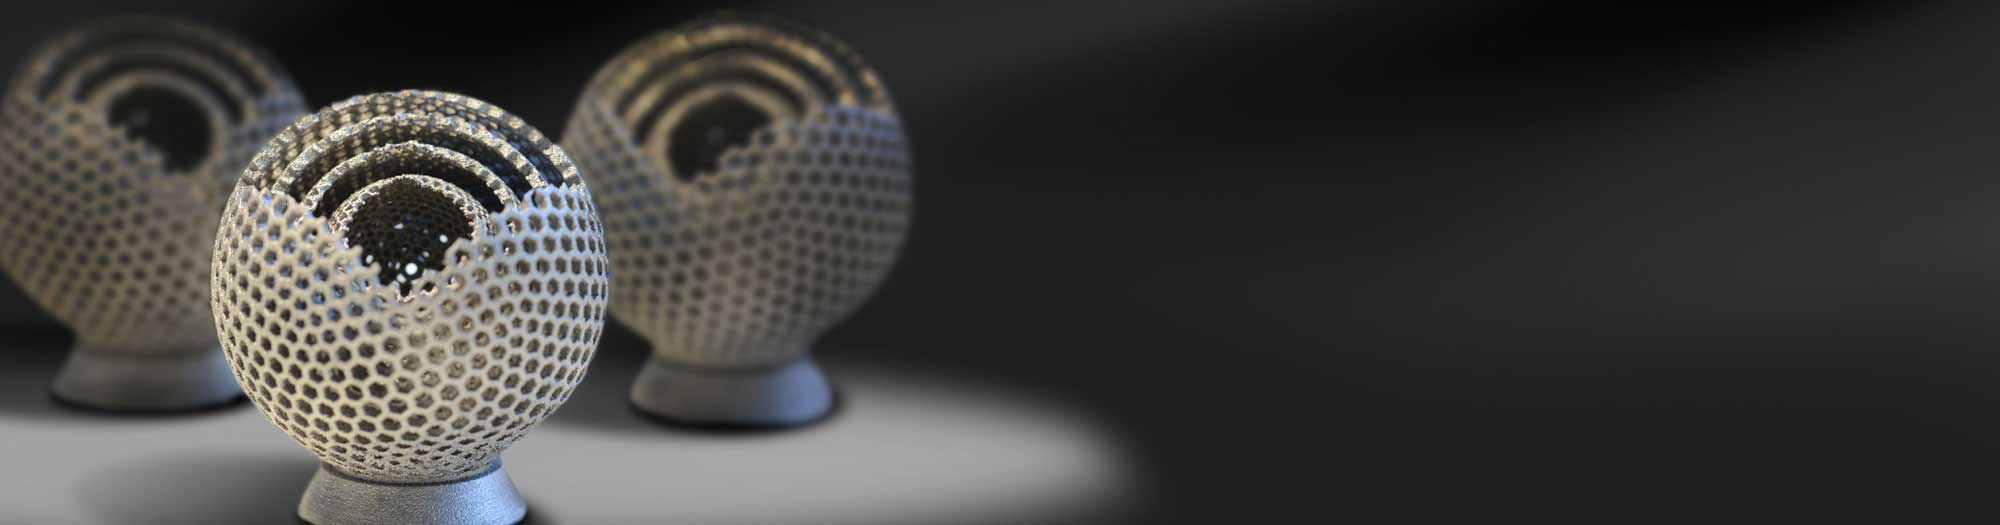 3D metal printing, additive manufacturing